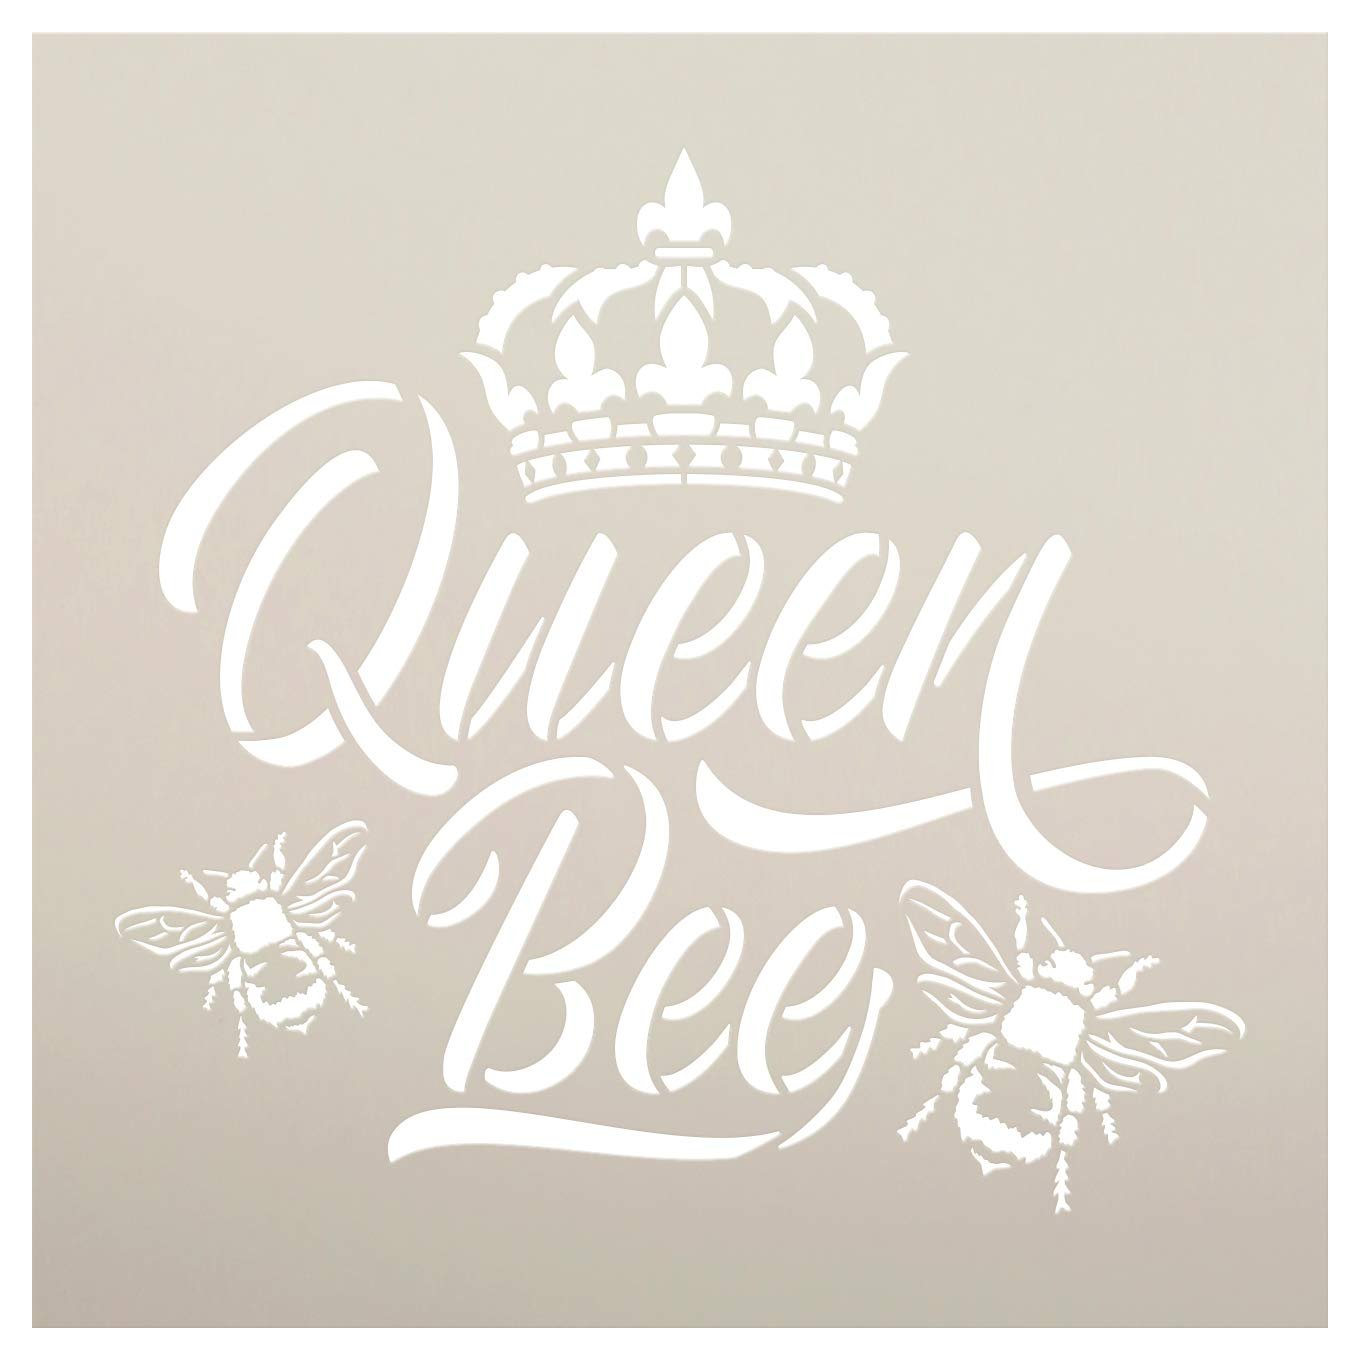 Queen Bee Stencil with Crown by StudioR12 | DIY Farmhouse Script Home Decor | Cursive Rustic Country Word Art | Craft & Paint Wood Signs | Reusable Mylar Template | Select Size